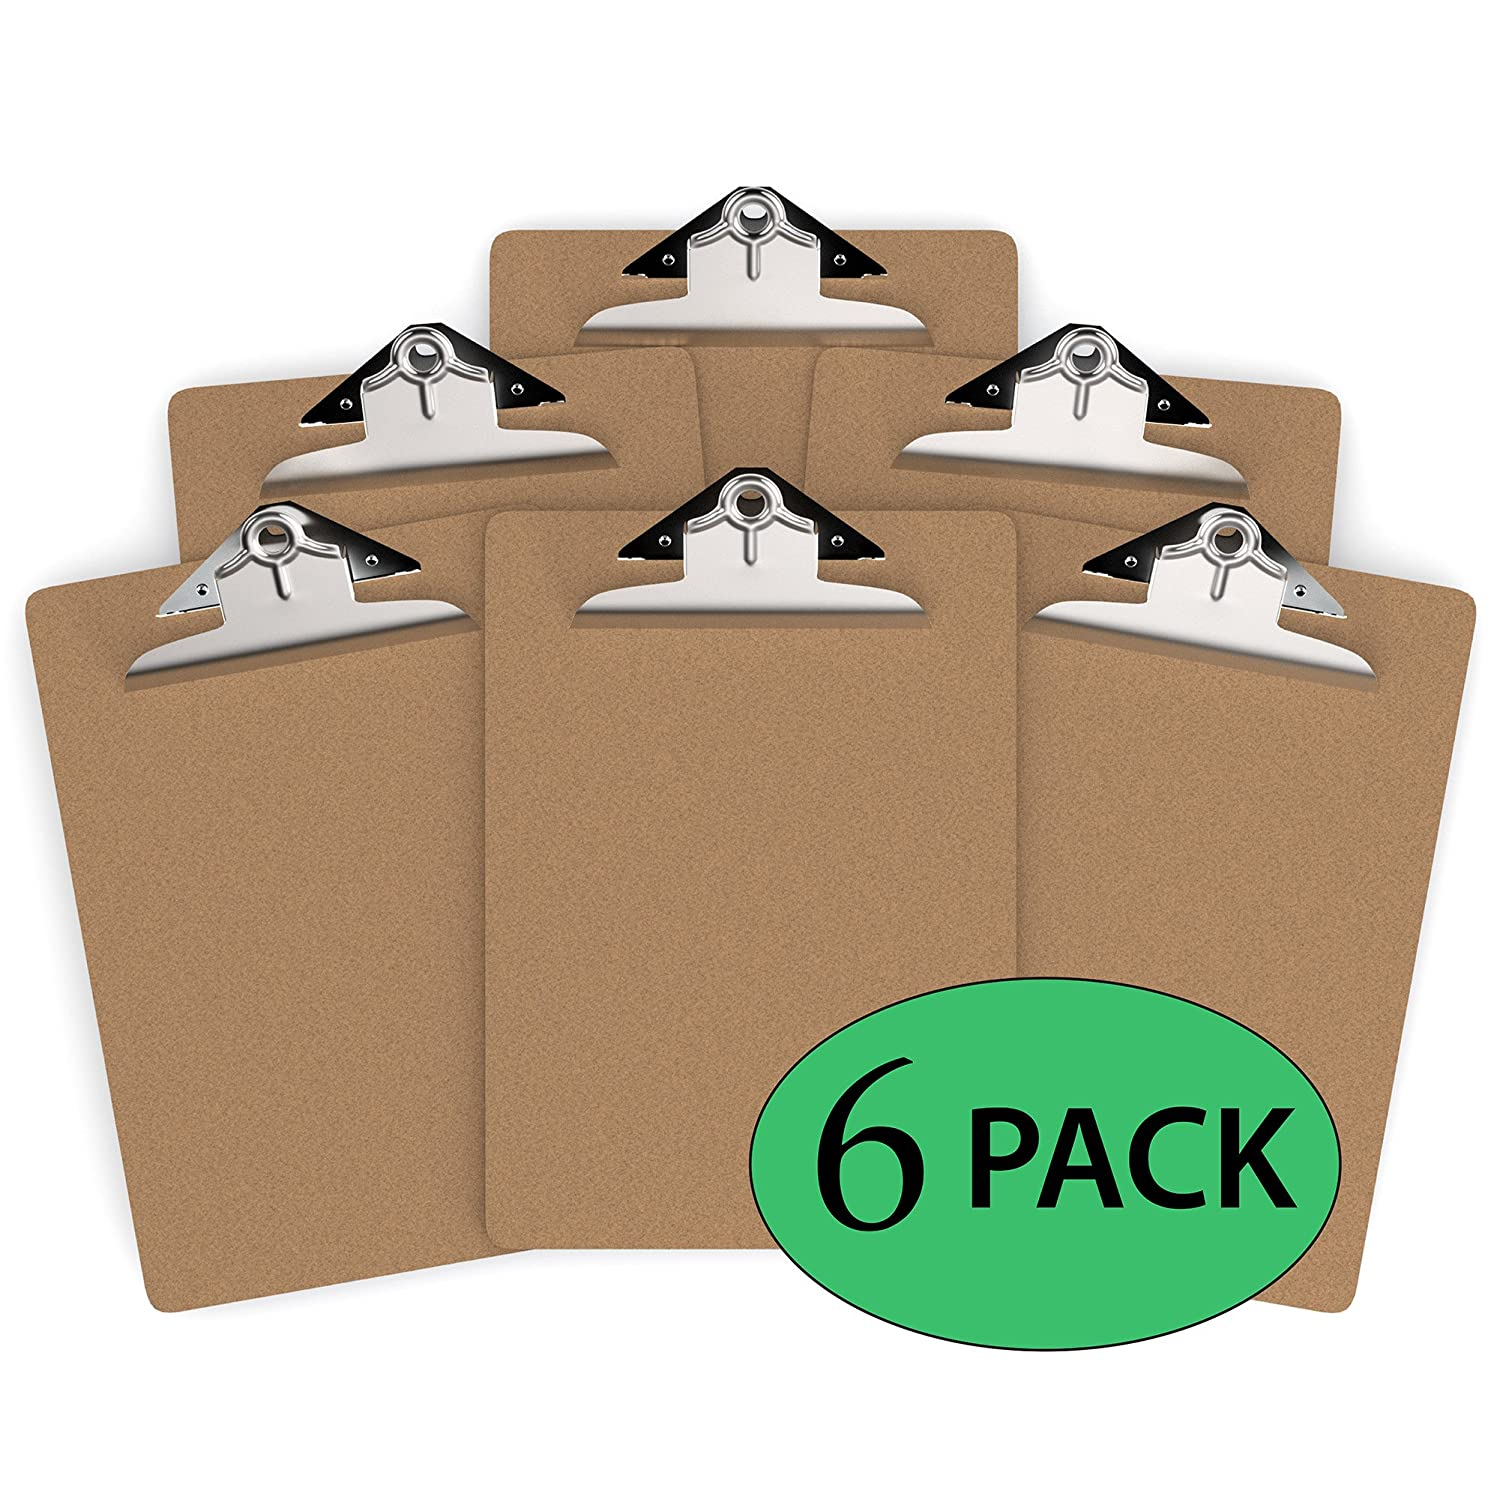 Davis Group Clipboard, Letter Size (9 x 12), Hardboard - 6 Pack